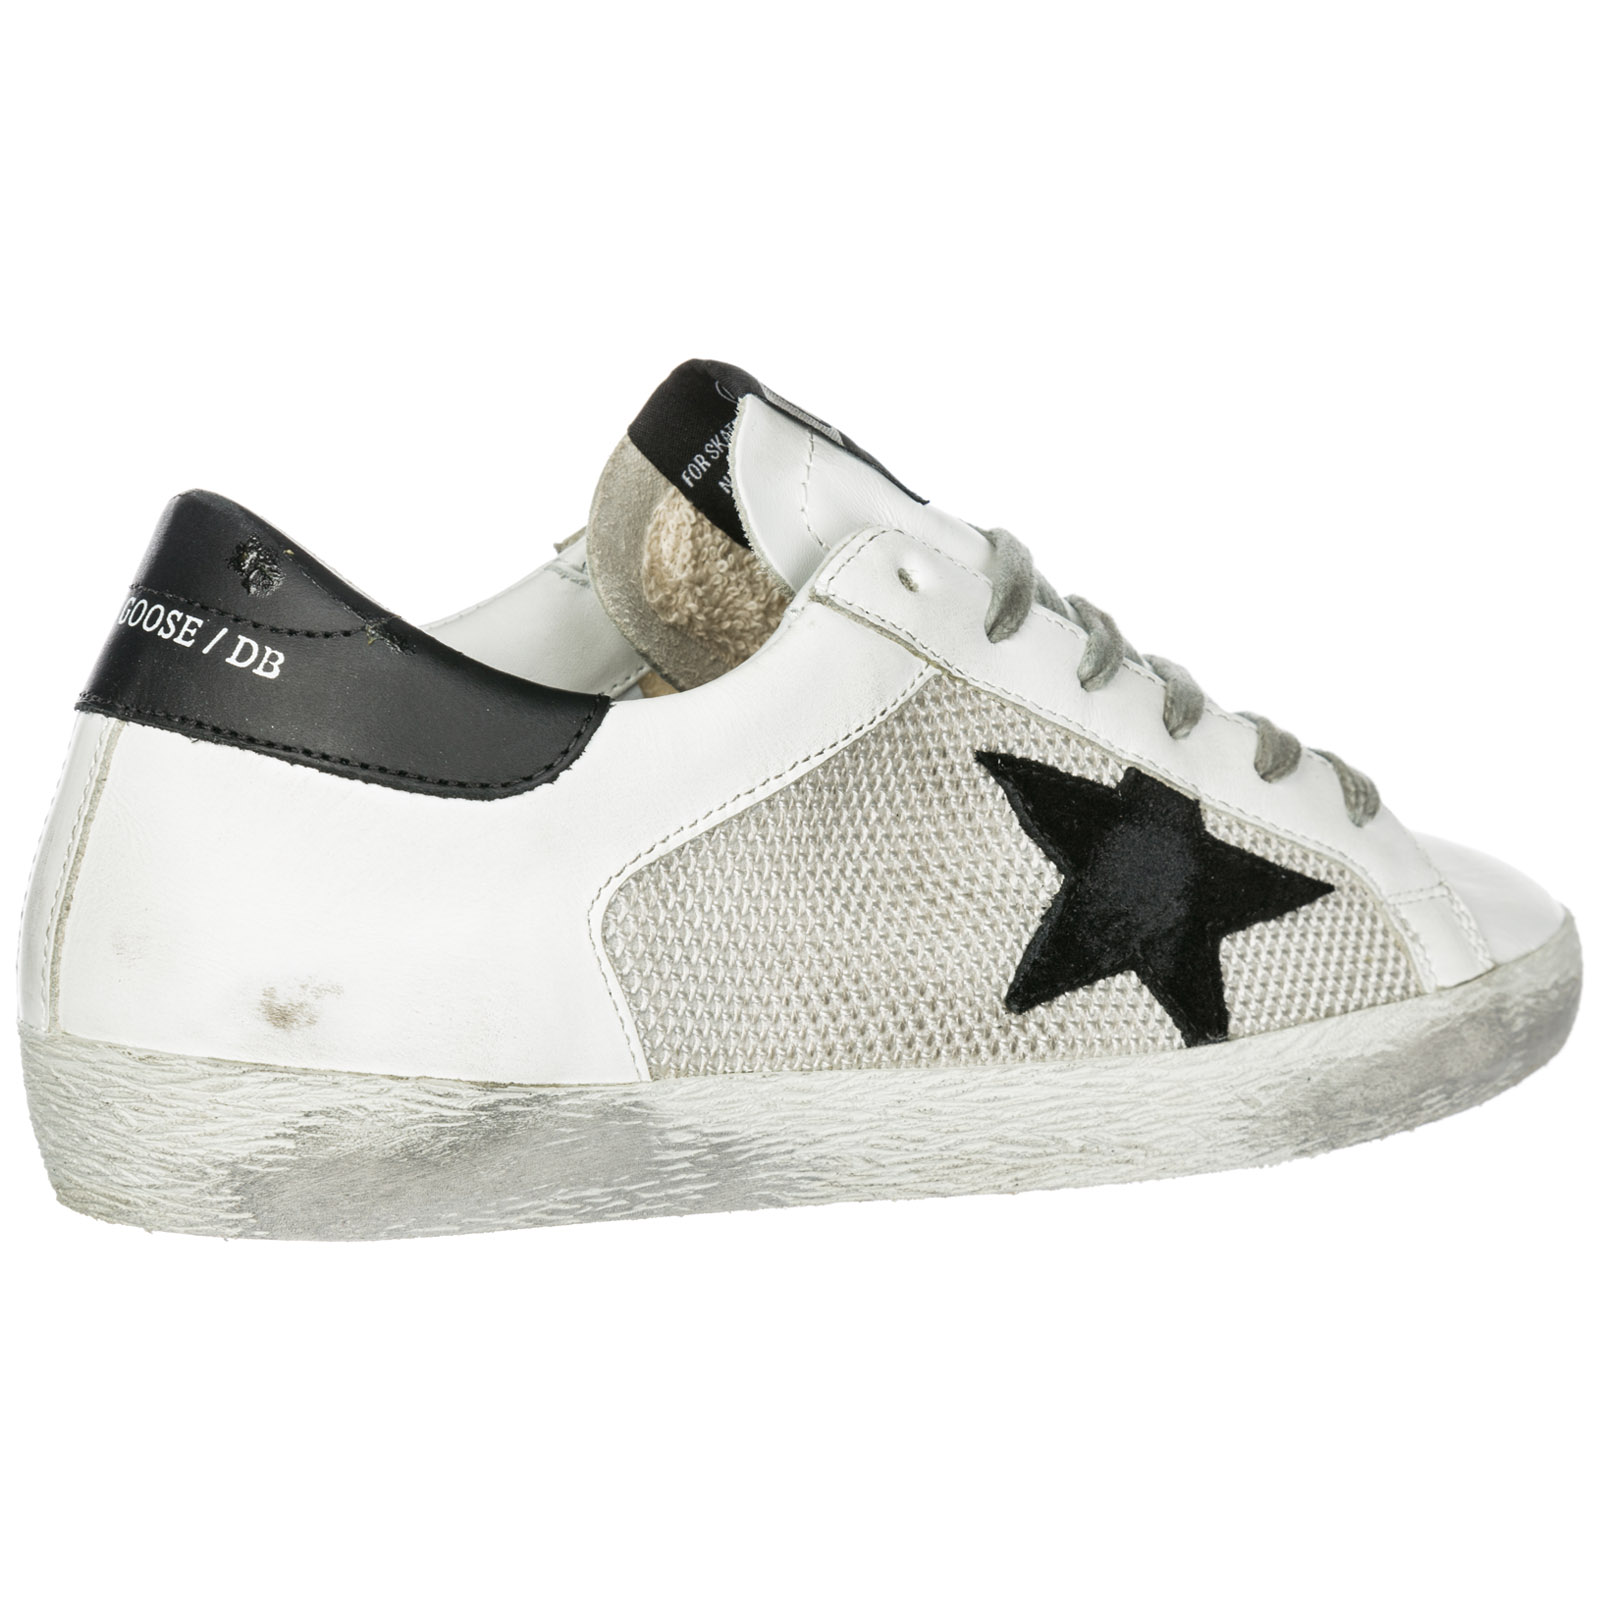 Women's shoes leather trainers sneakers superstar